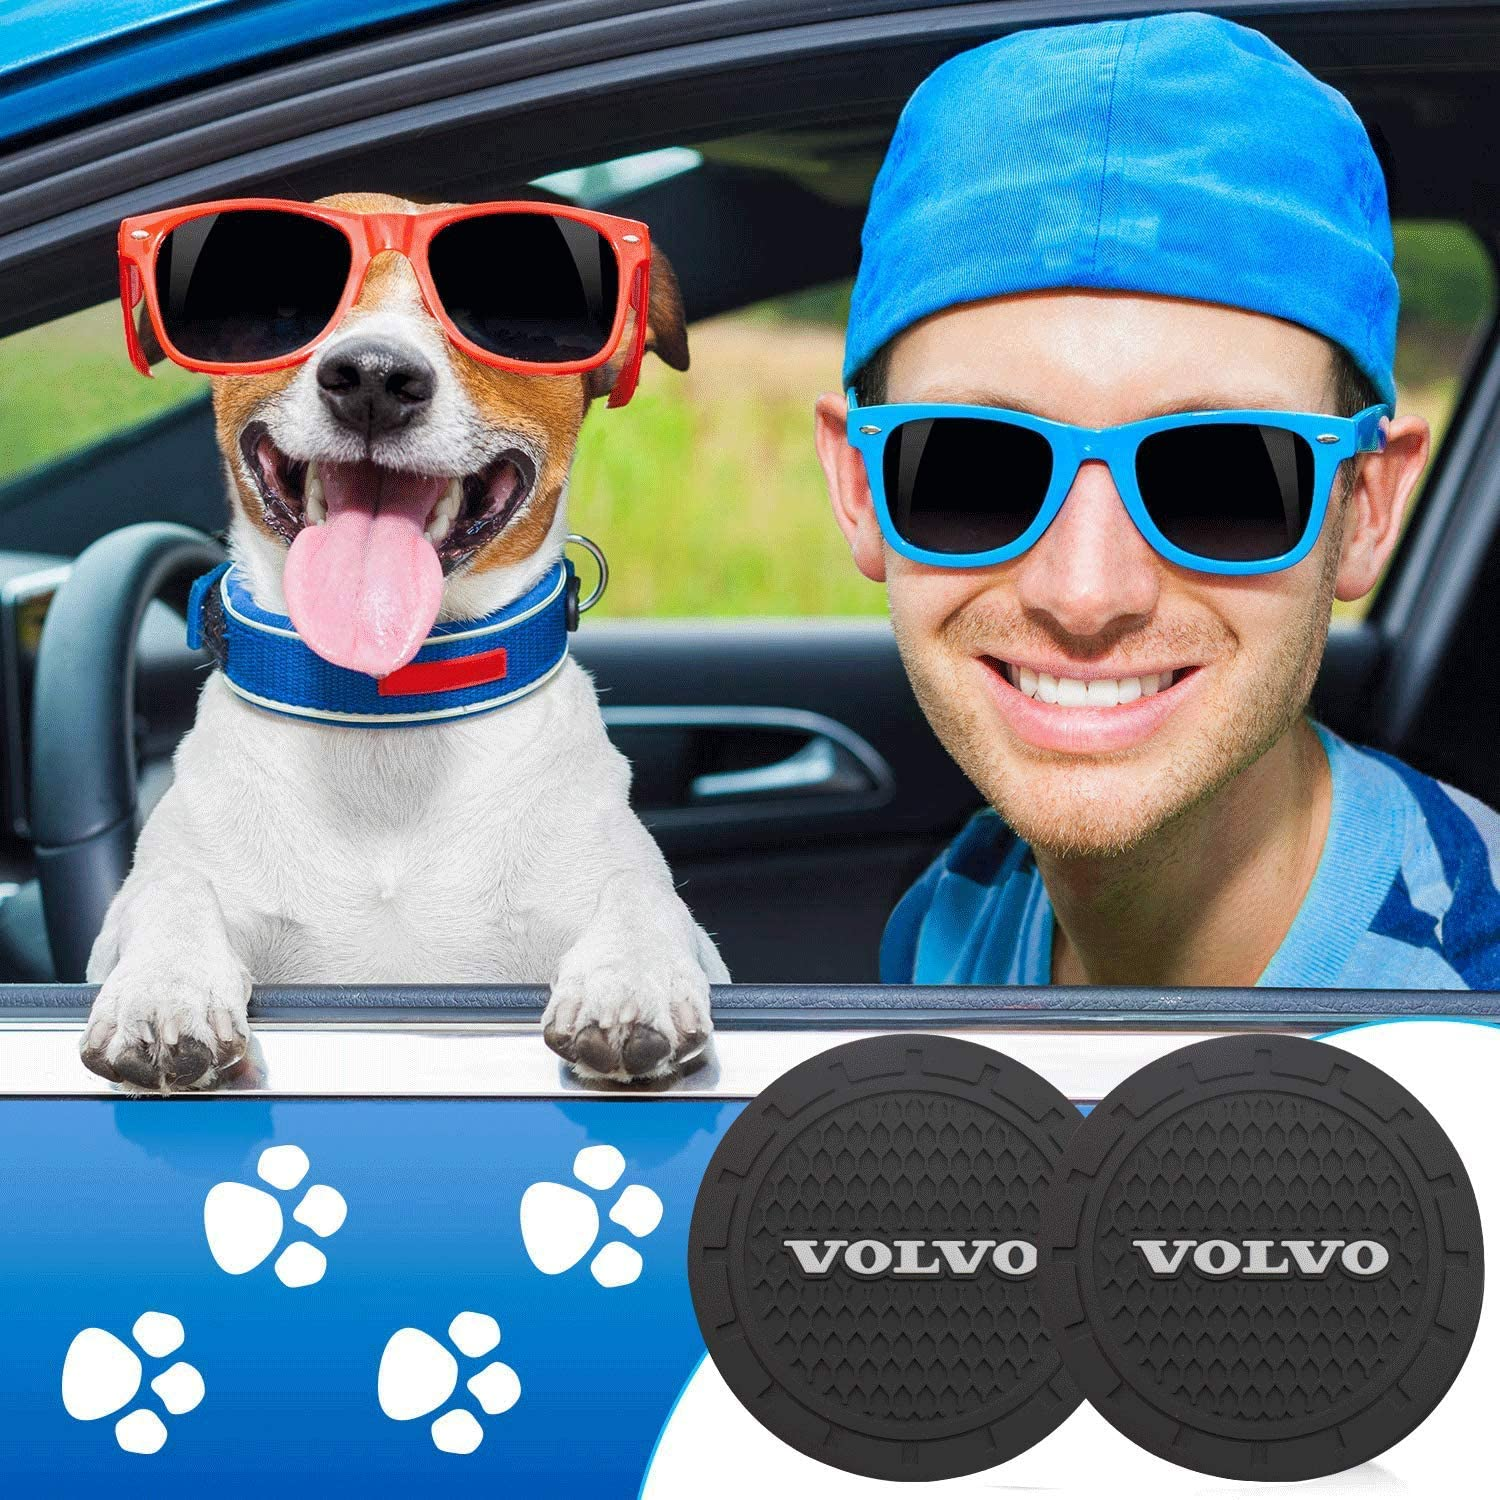 2 Pcs 99 Carpro 2.75 Car Interior Accessories Silicone Anti Slip Cup Mat Niversal Vehicle Cup Holder Coasters for Jeep Audi BMW Ford Mustang Cadillac Dodge Toyota Rams